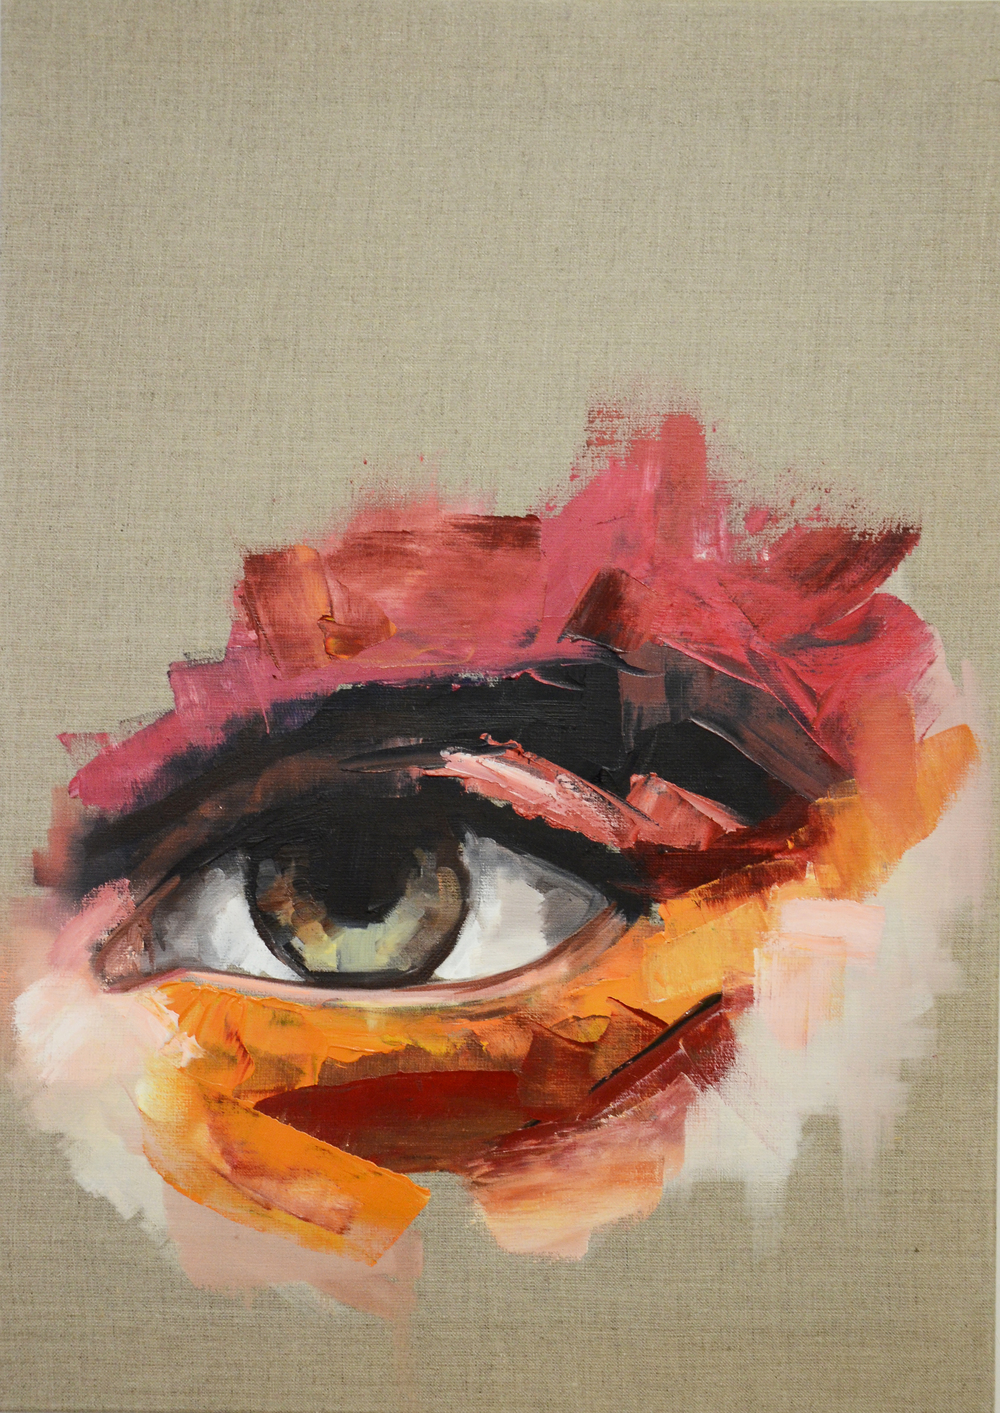 Eye Focus,  Oil on canvas, 66x50cm